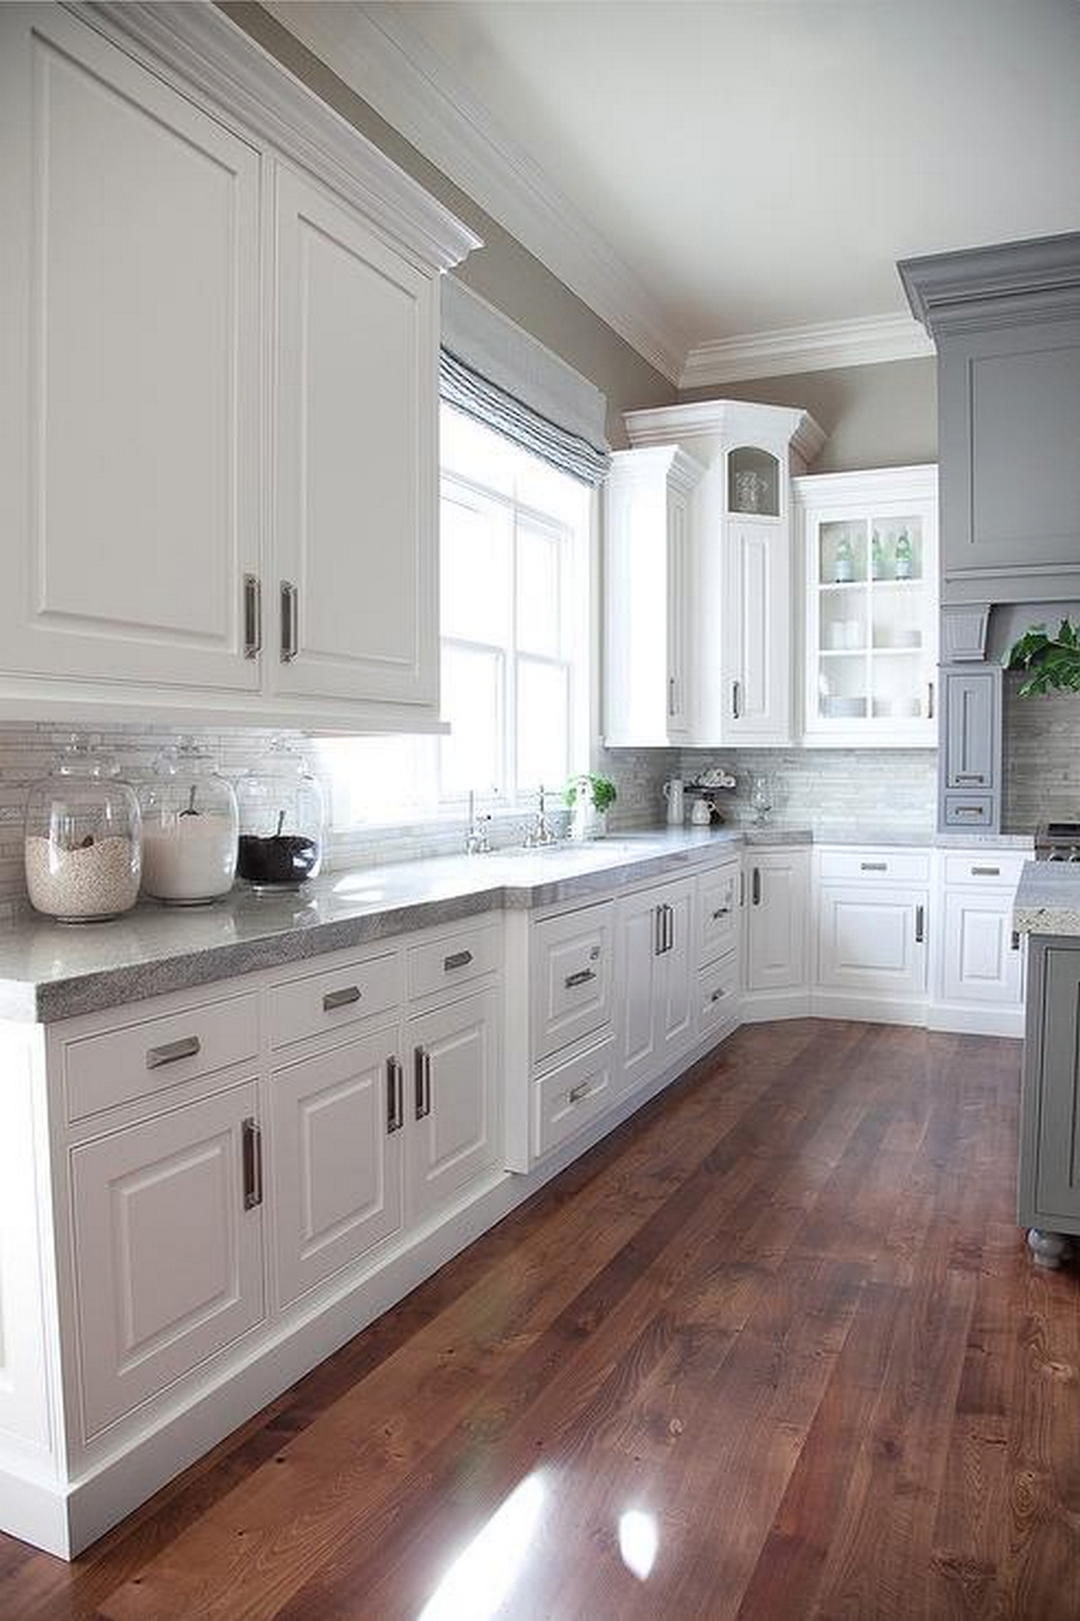 Why White Kitchen Interior Is Still Great For 2019 White Kitchen Interior Kitchen Design Transitional Kitchen Design